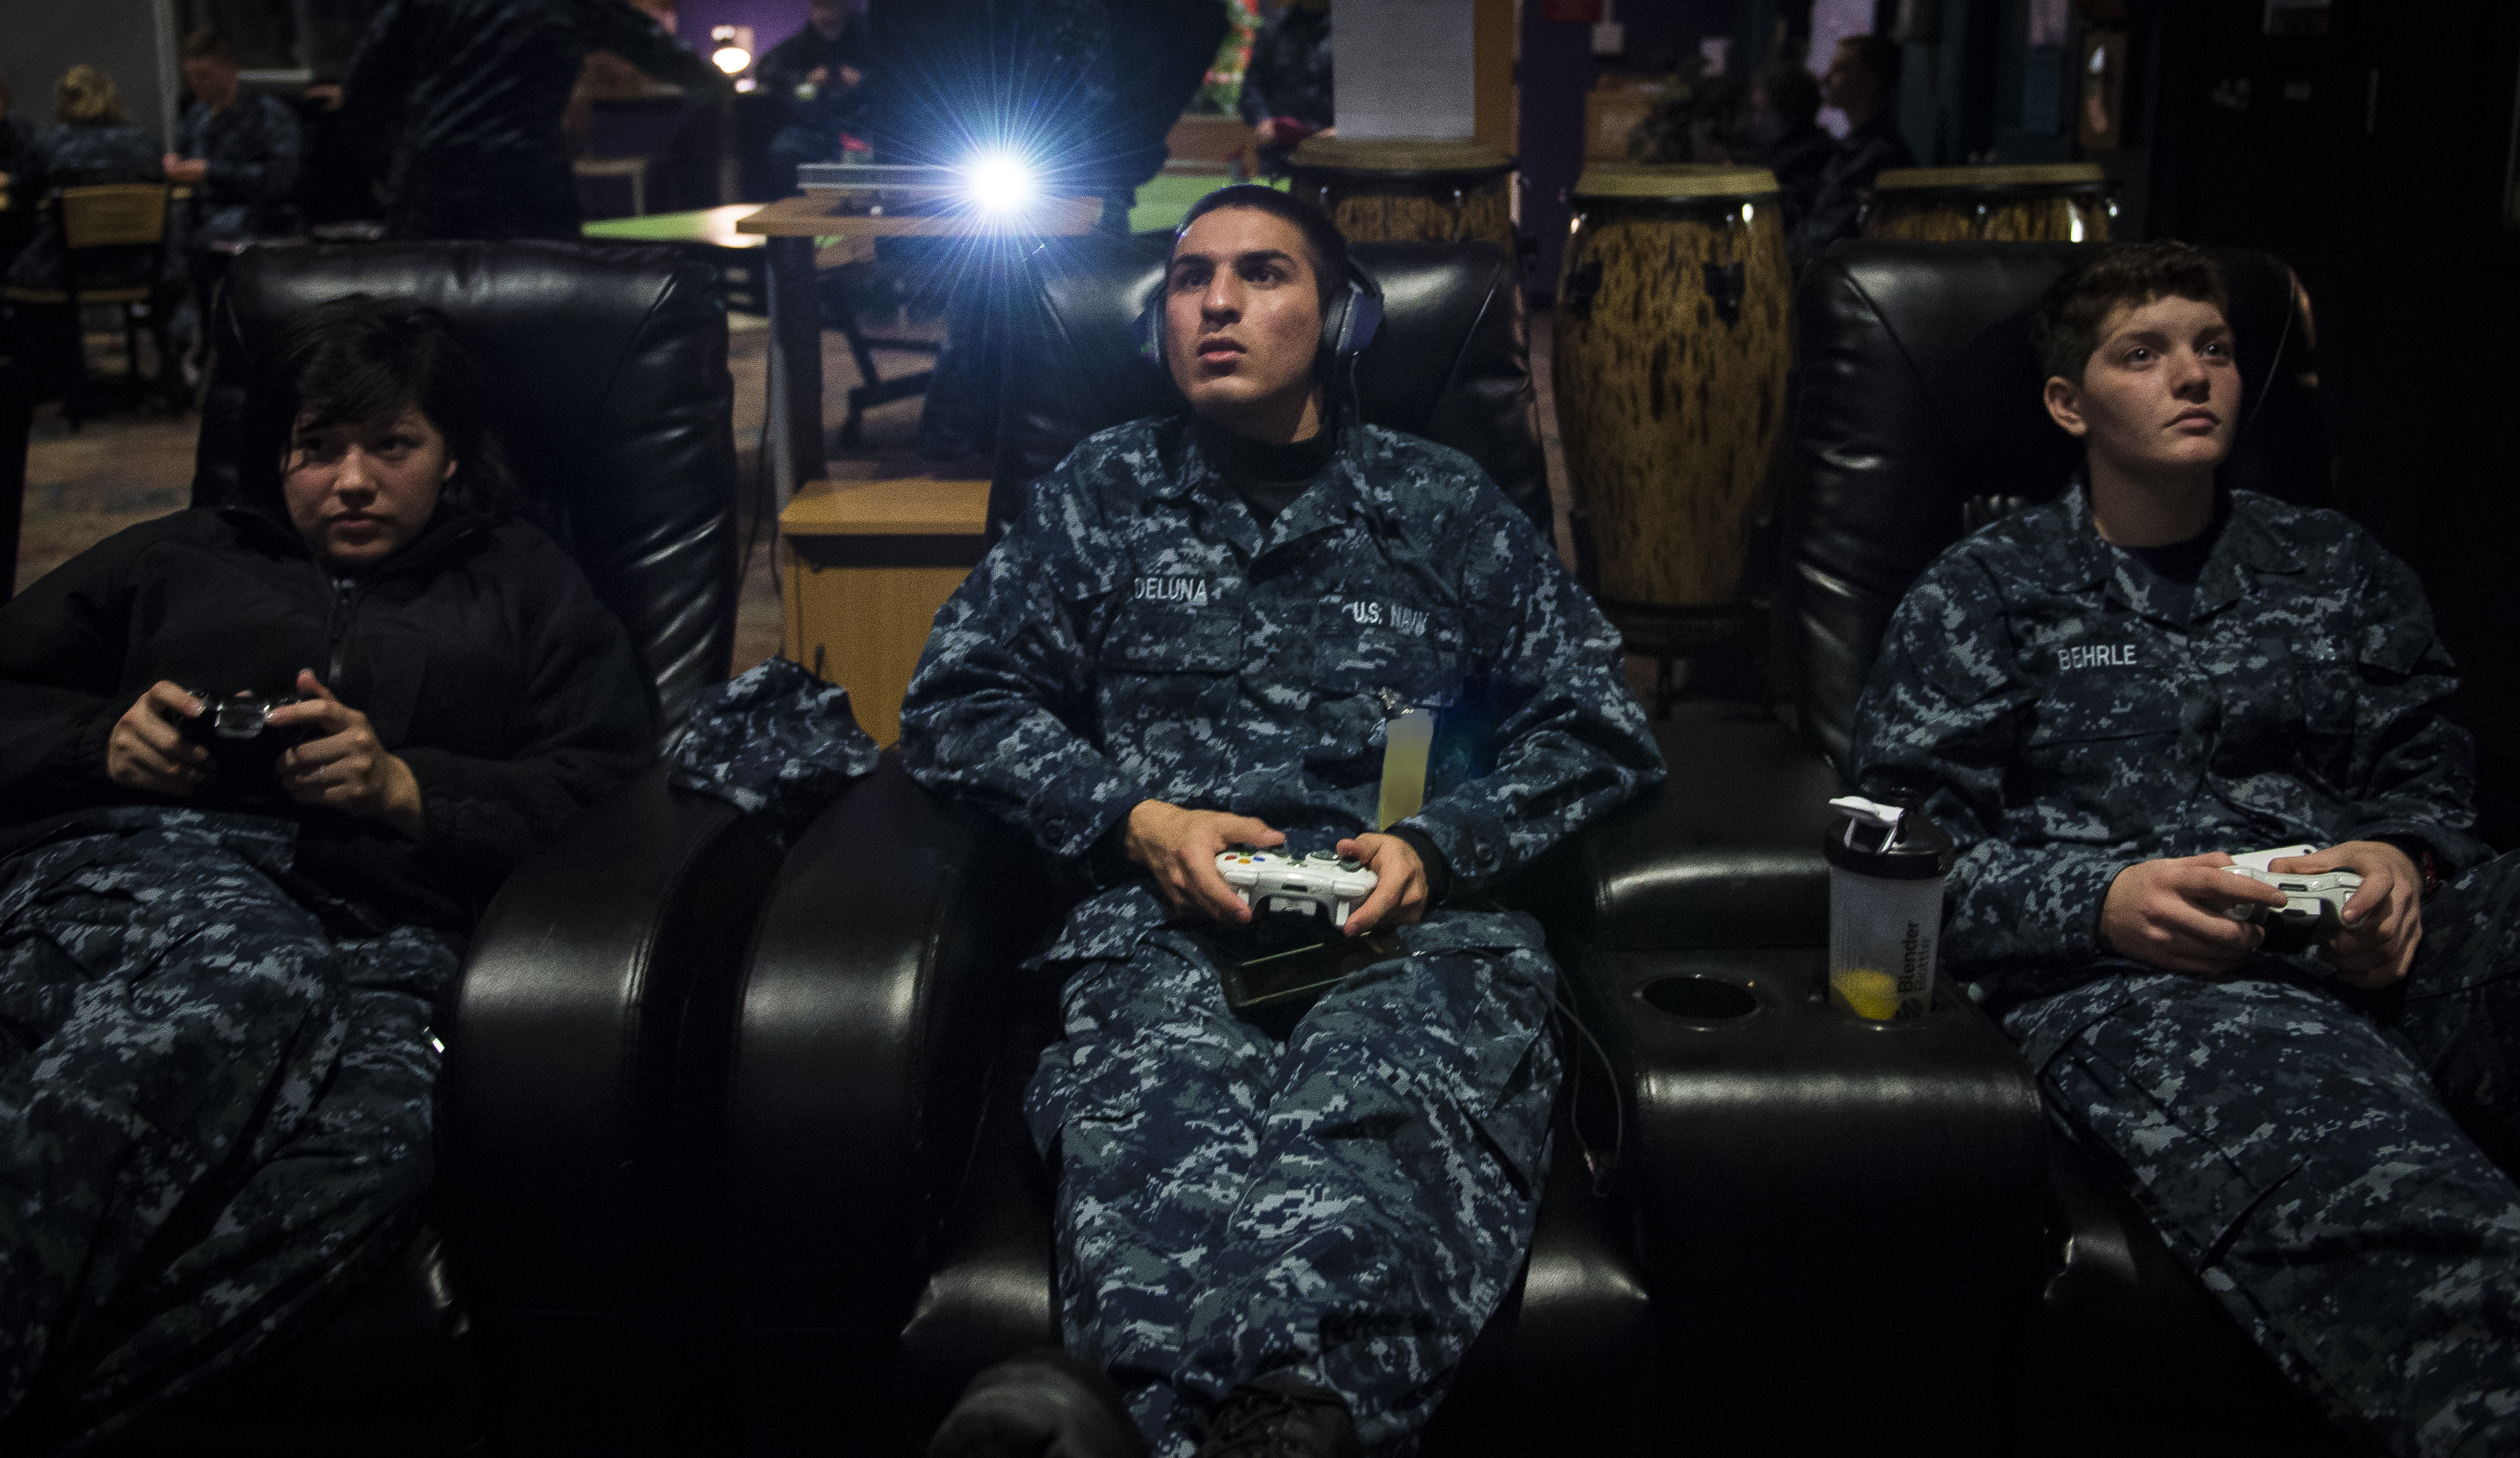 Photos Electricity Basic Navy Training Courses Naval Nuclear Power Command Student Play Video Games In The Bowman Center After A Long